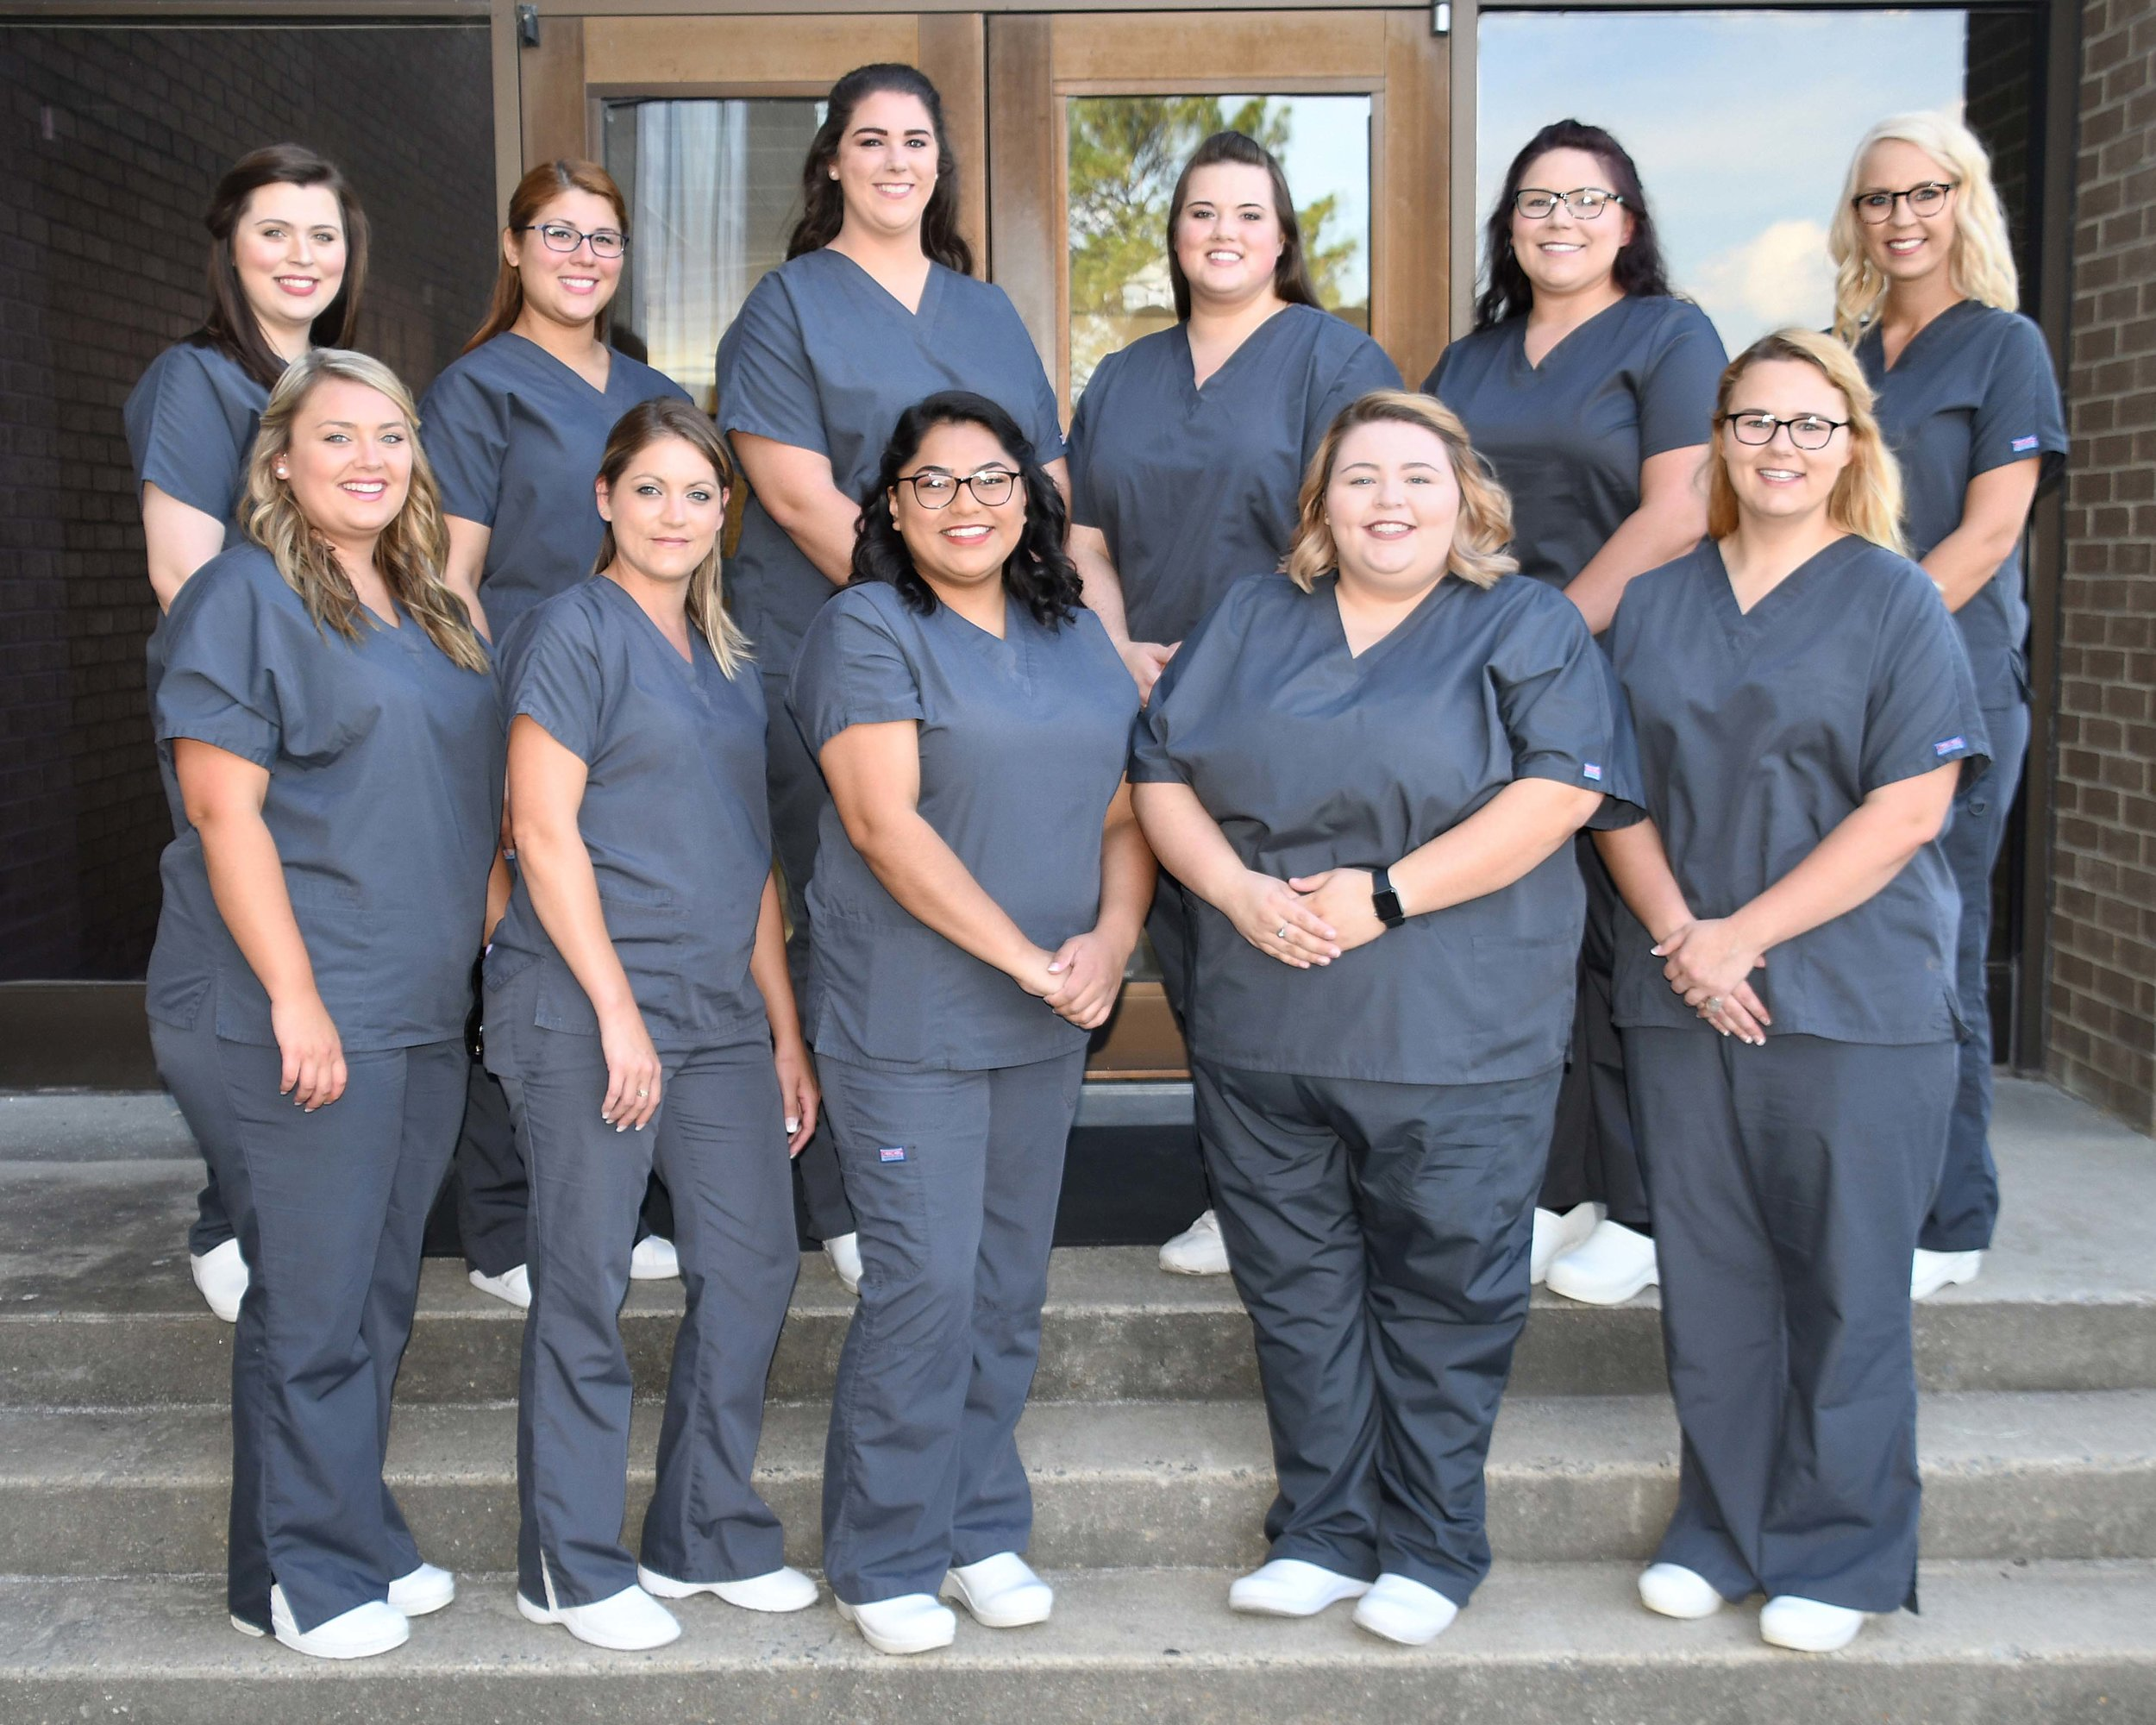 SURGICAL TECHNOLOGY CLASS OF 2019  – Pictured left to right, front row, are Natalie Dudley of Vanceboro, Kimberly Rogerson of Winterville, Ana Garcia-Mendez of Kinston, Macayla Vandiford of La Grange, and Jessica Paige Kennedy of Deep Run; back row, Katie Twigg of Kinston, Claudia Coronado Moore of Kinston, Katie Smith of Trenton, Jordi Manuel of Kinston, Payton Best of Goldsboro, and Kaitlyn Napier of Snow Hill.